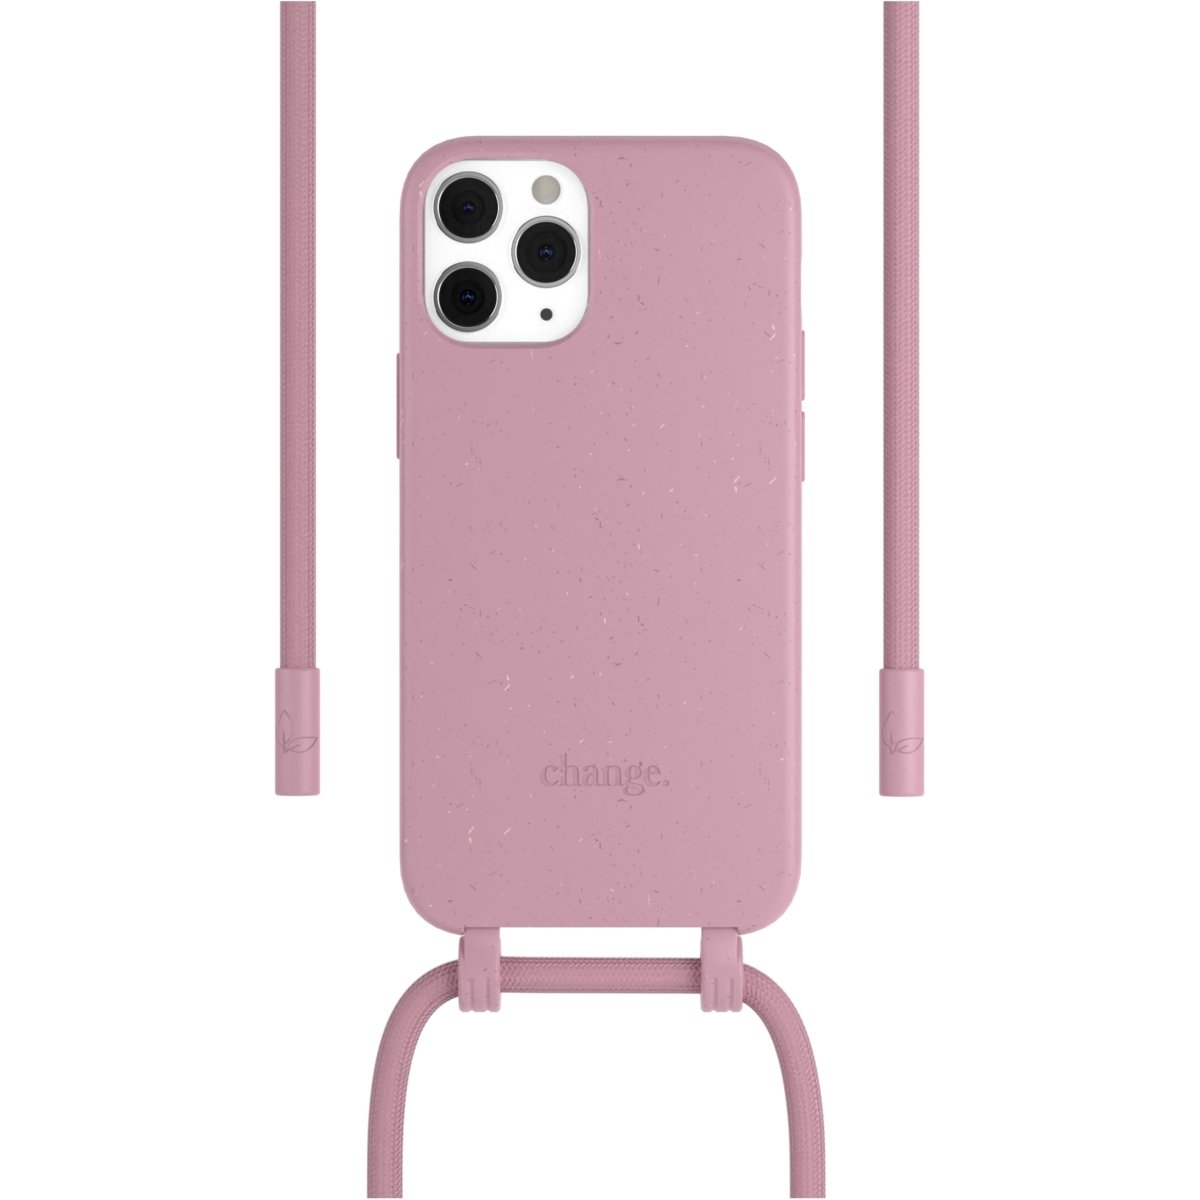 Woodcessories Change Case AM iPhone 12 / 12 Pro - pink